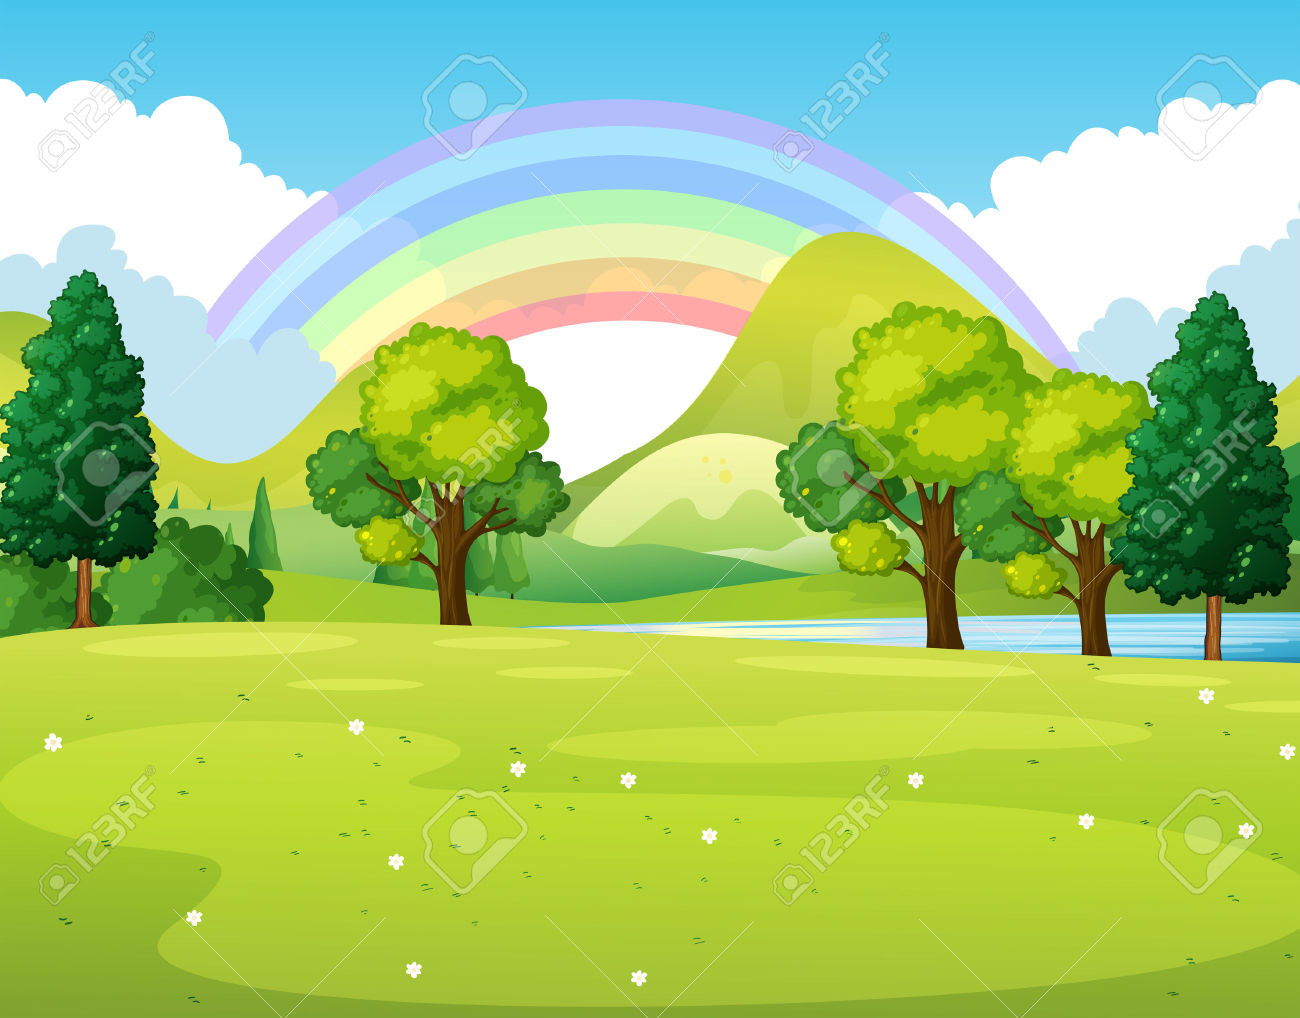 park clipart 45533174 Nature scene of a park with rainbow illustration Stock Vector park